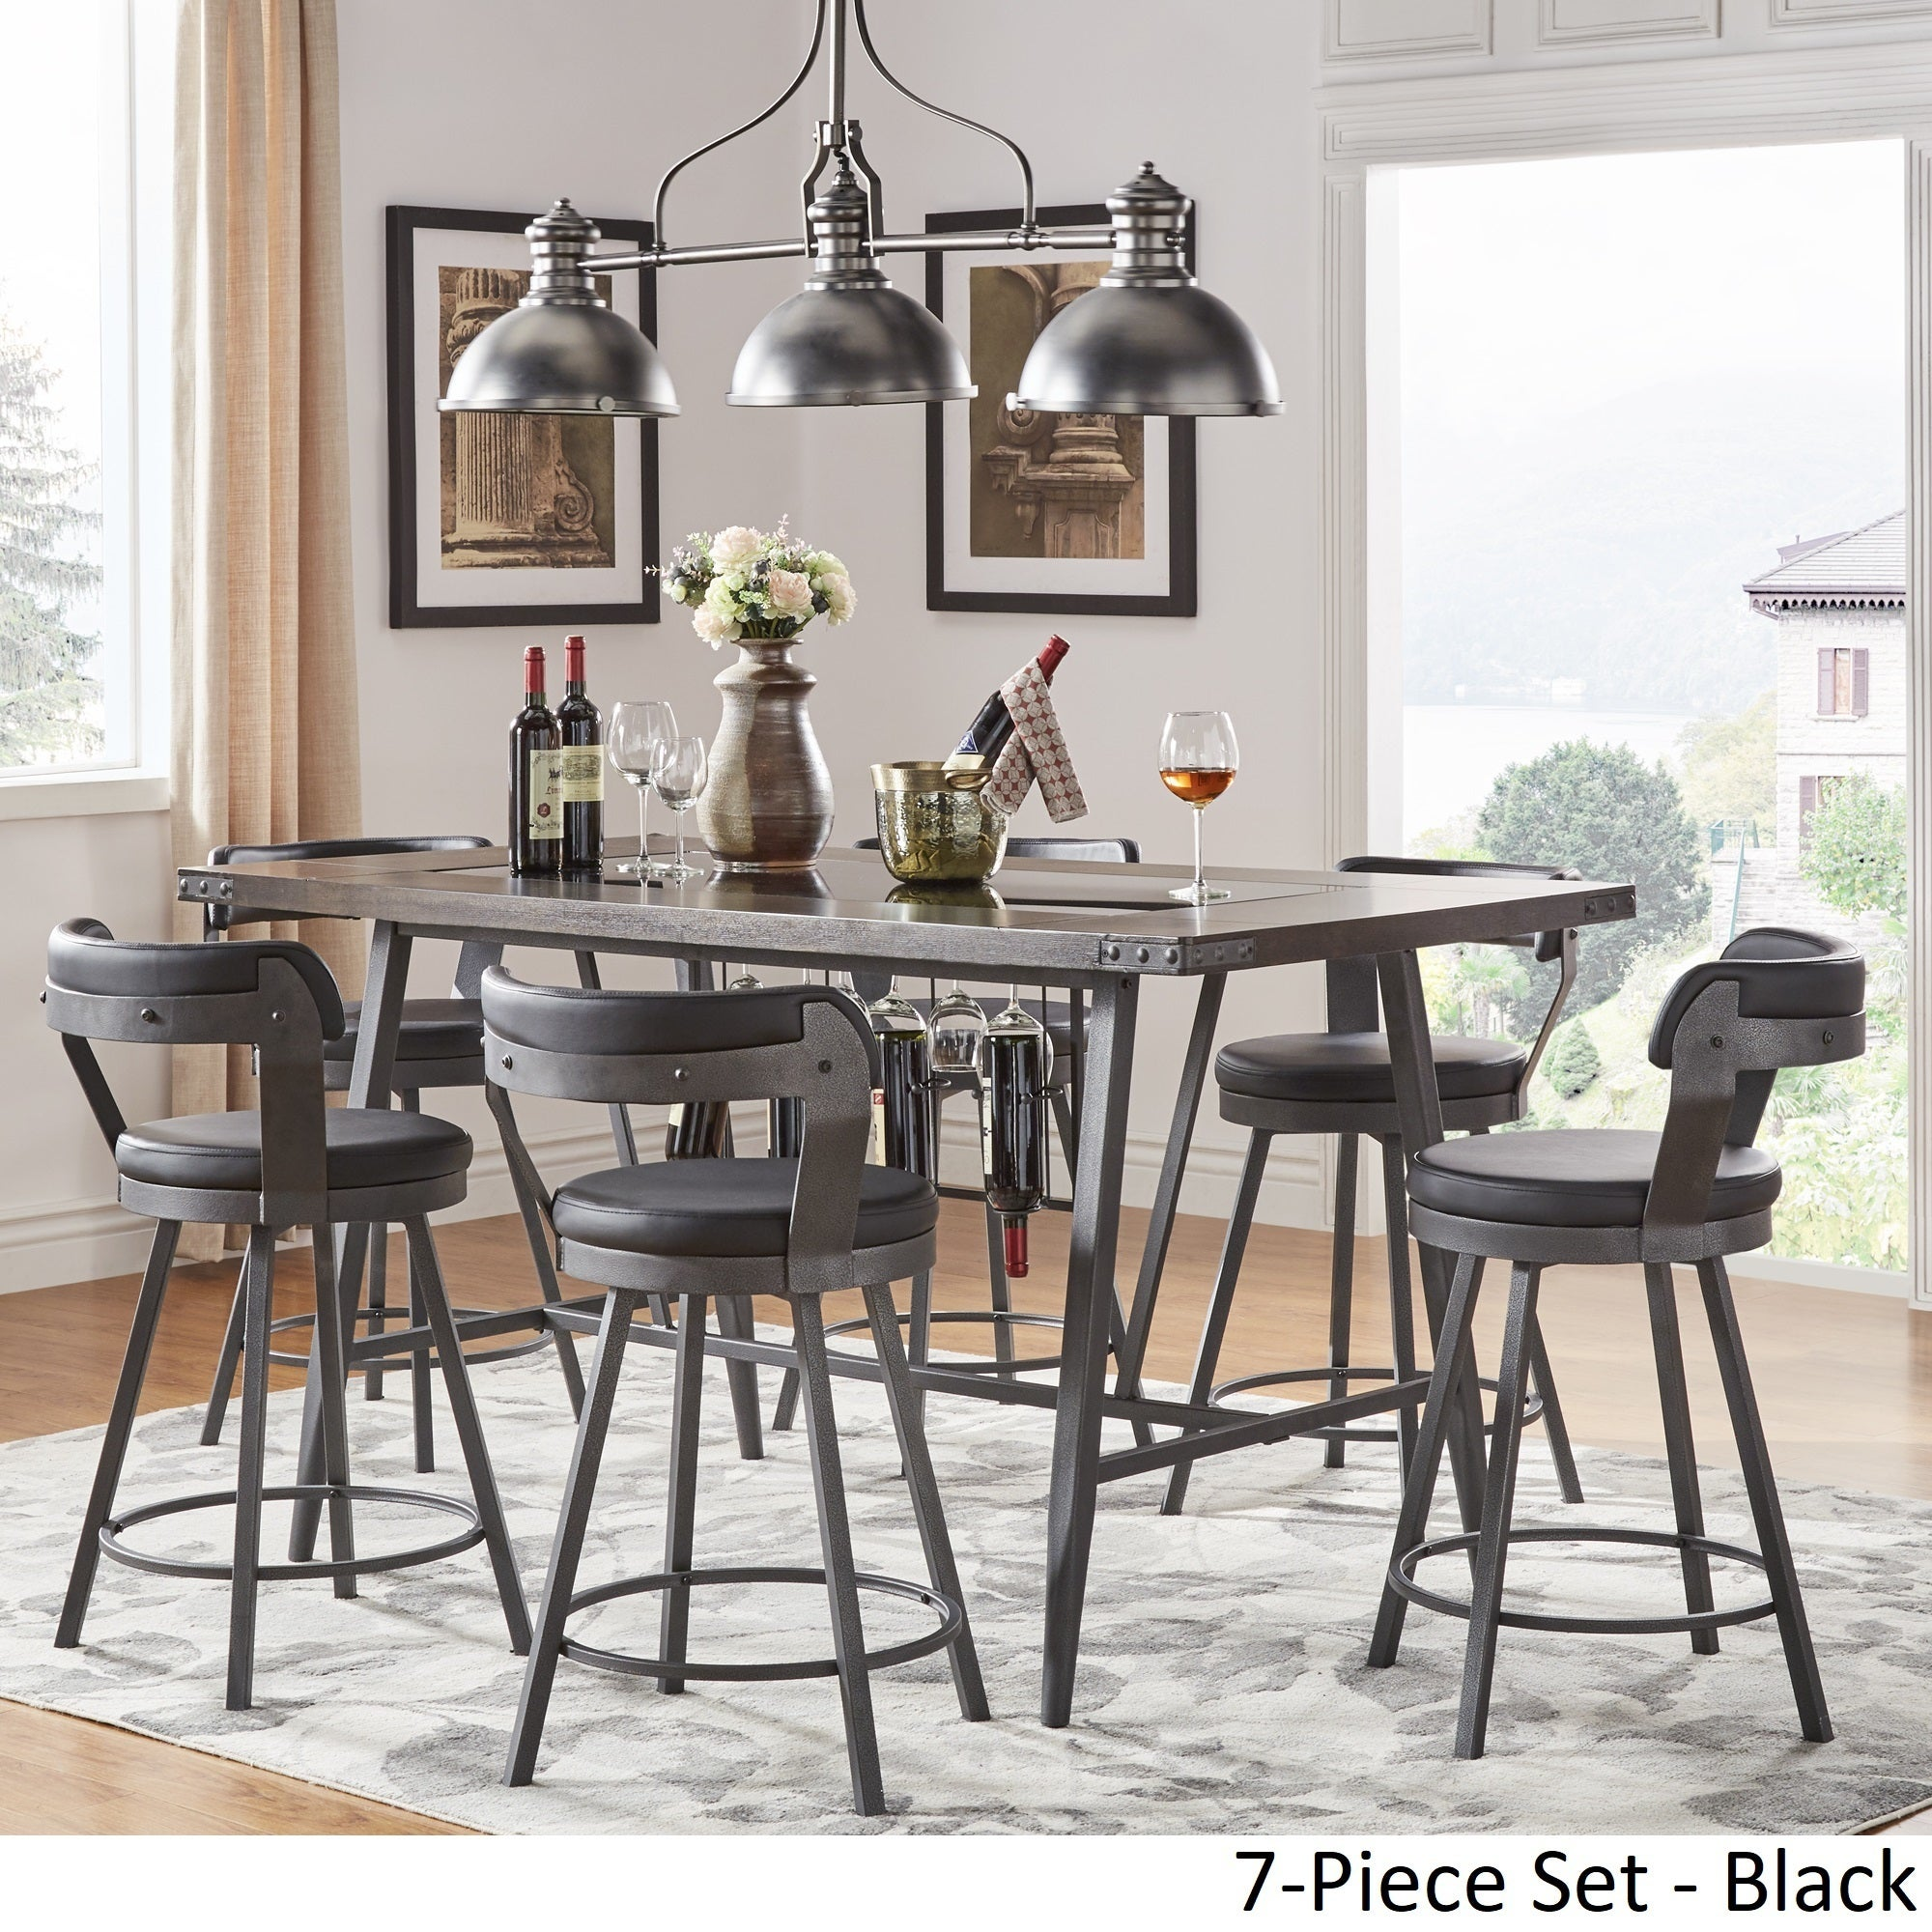 Dining Room Table With Wine Rack Images Dining Table Ideas : Harley Counter Height Dining Set with Wine Rack by iNSPIRE Q Modern 9750e6db b47e 44fa 84cc c2a03e730340 from sorahana.info size 2000 x 2000 jpeg 736kB